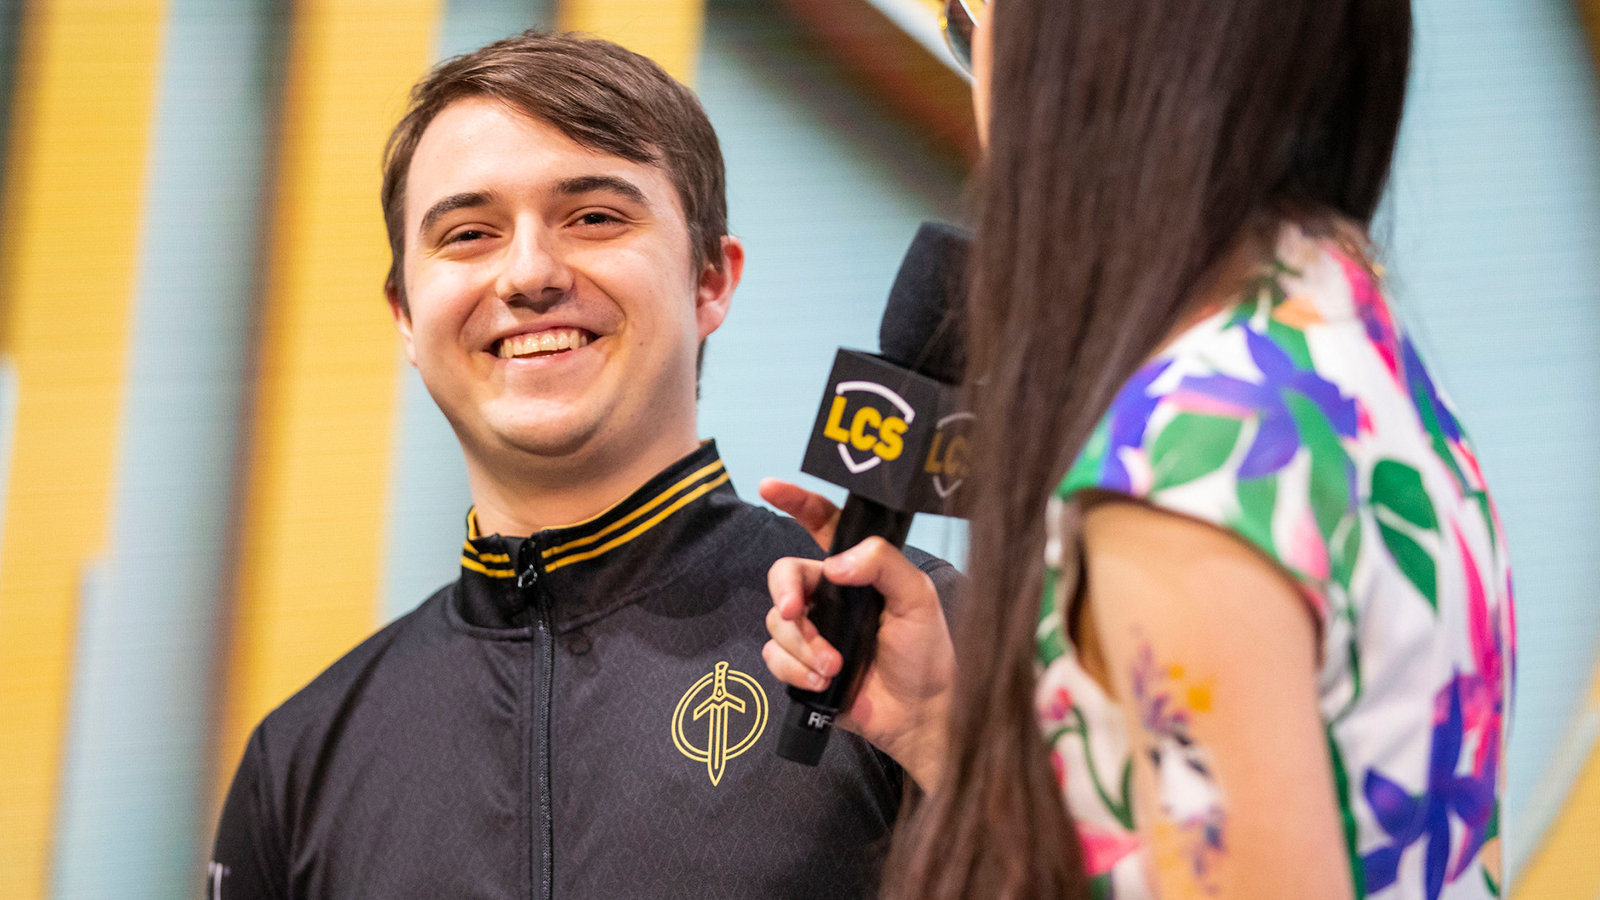 Ablazeolive playing for Golden Guardians Academy in LCS 2020